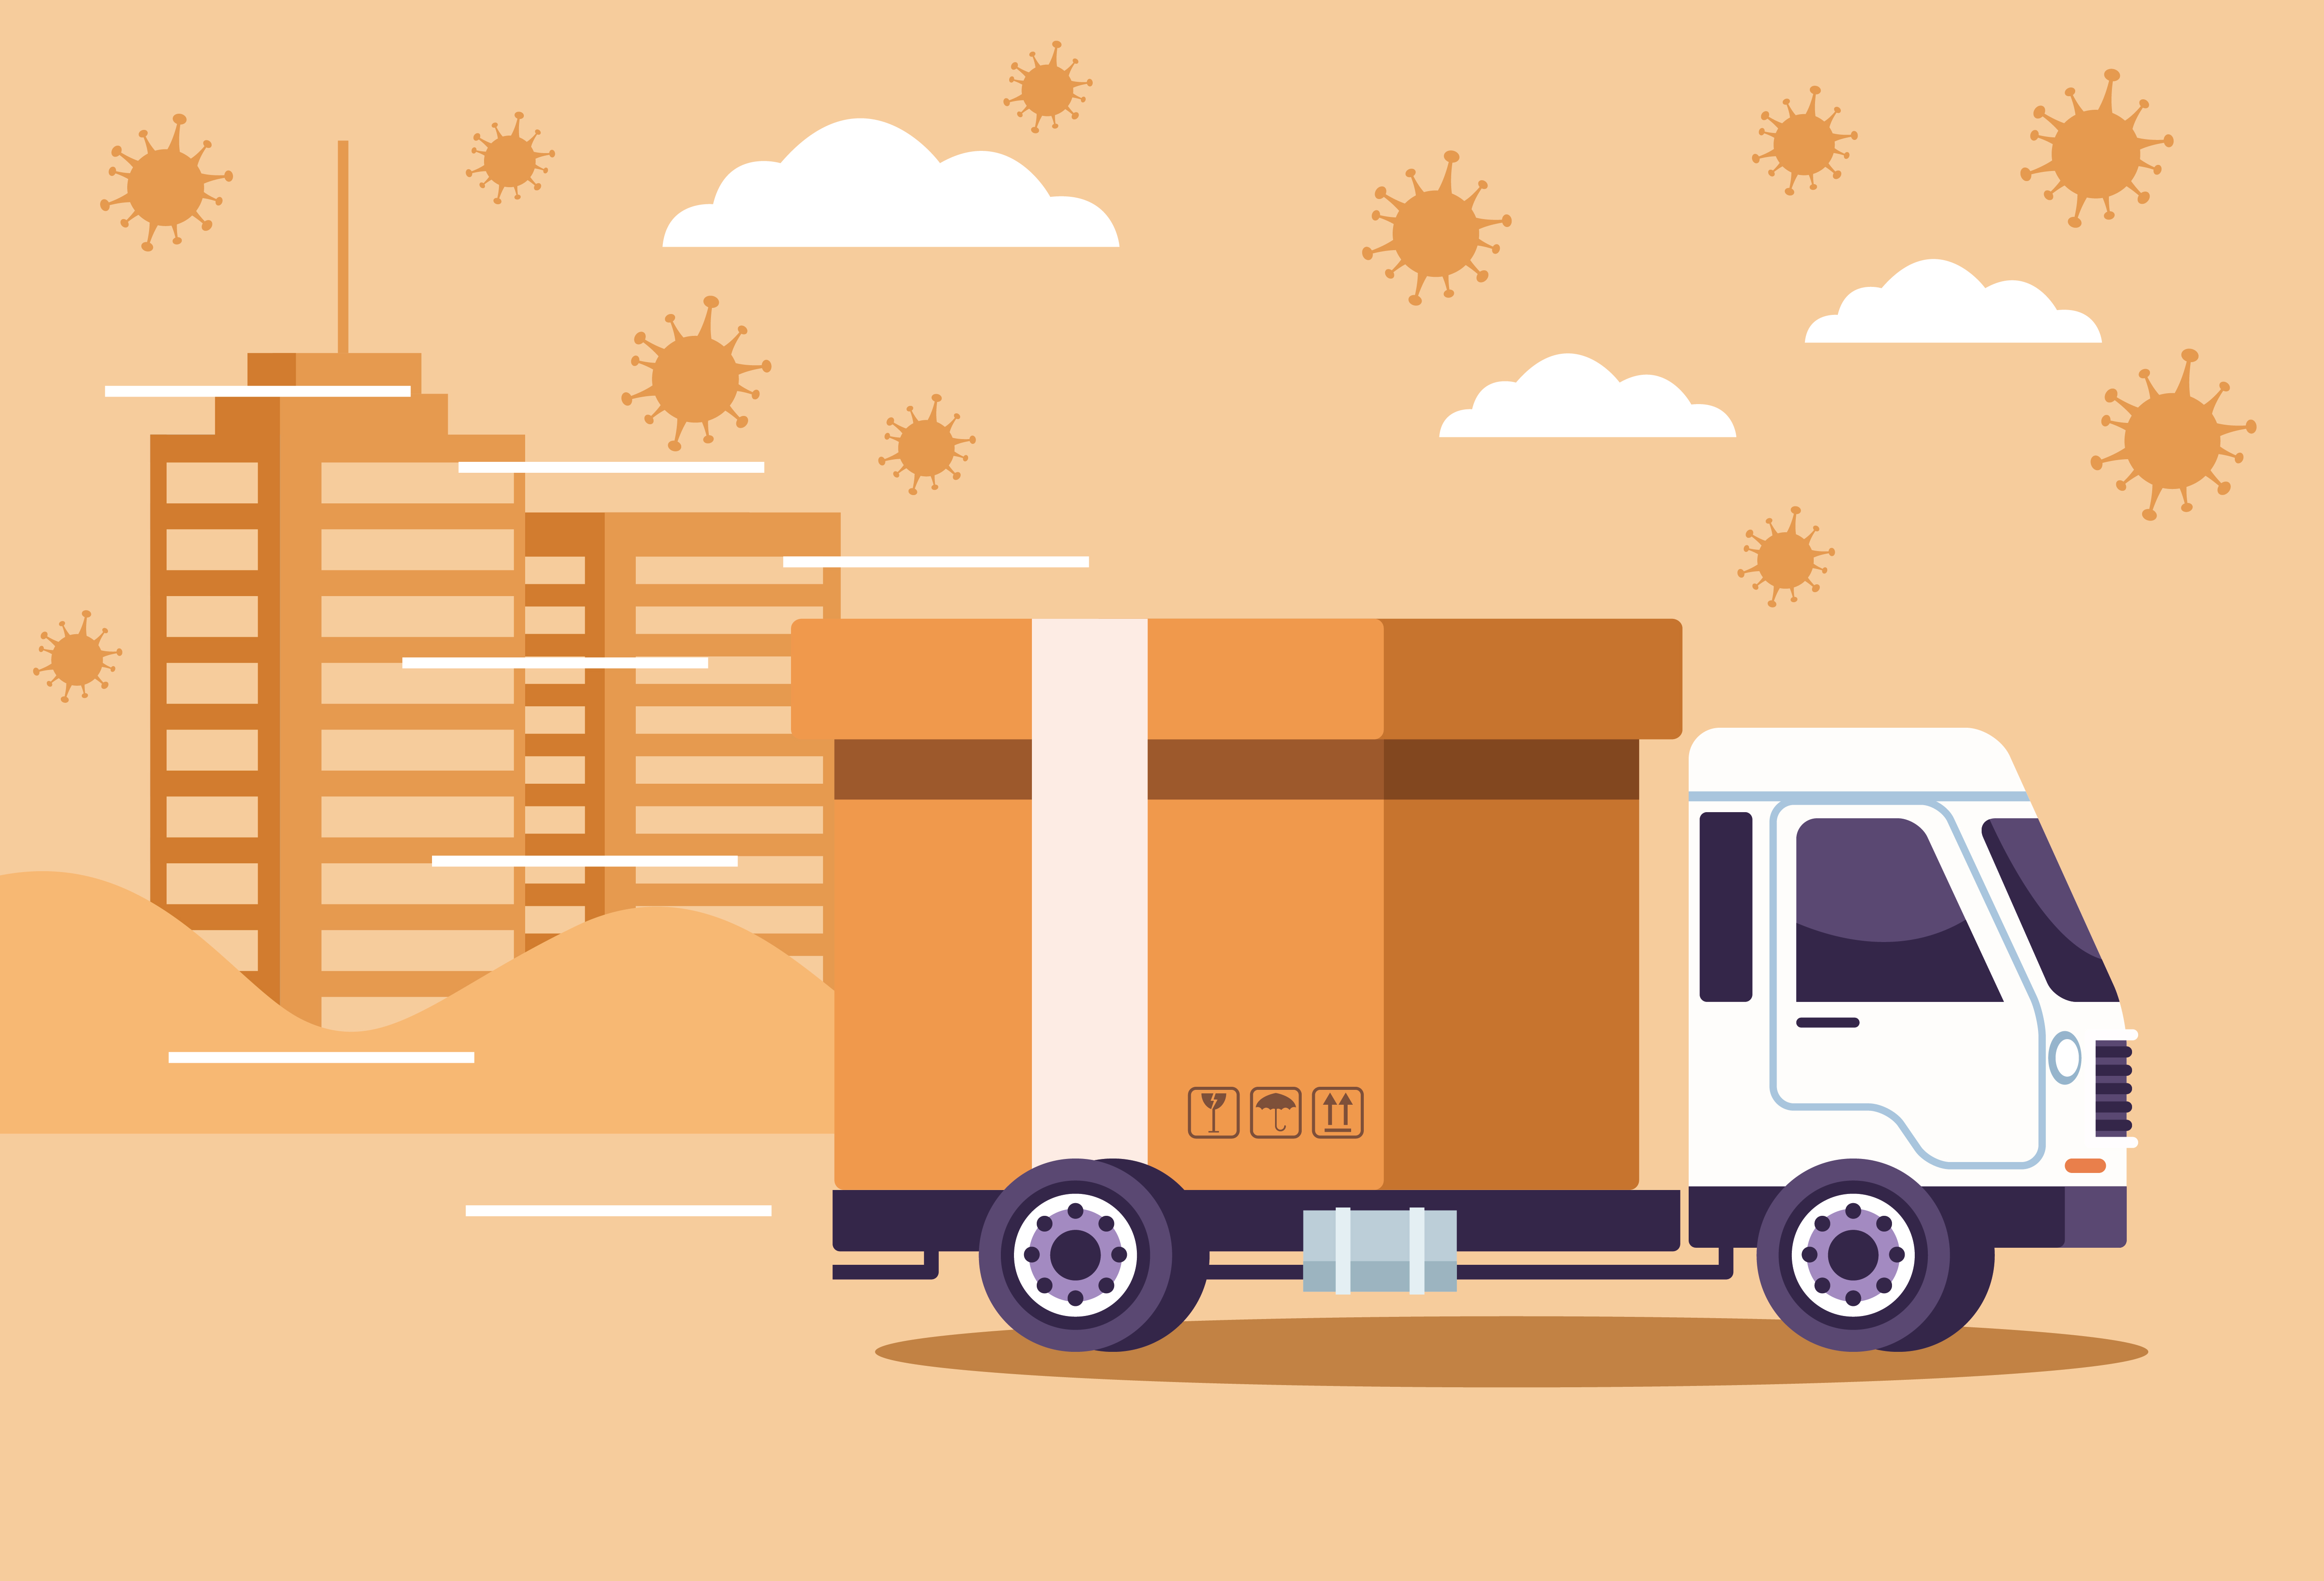 Truck delivery service with particles of coronavirus